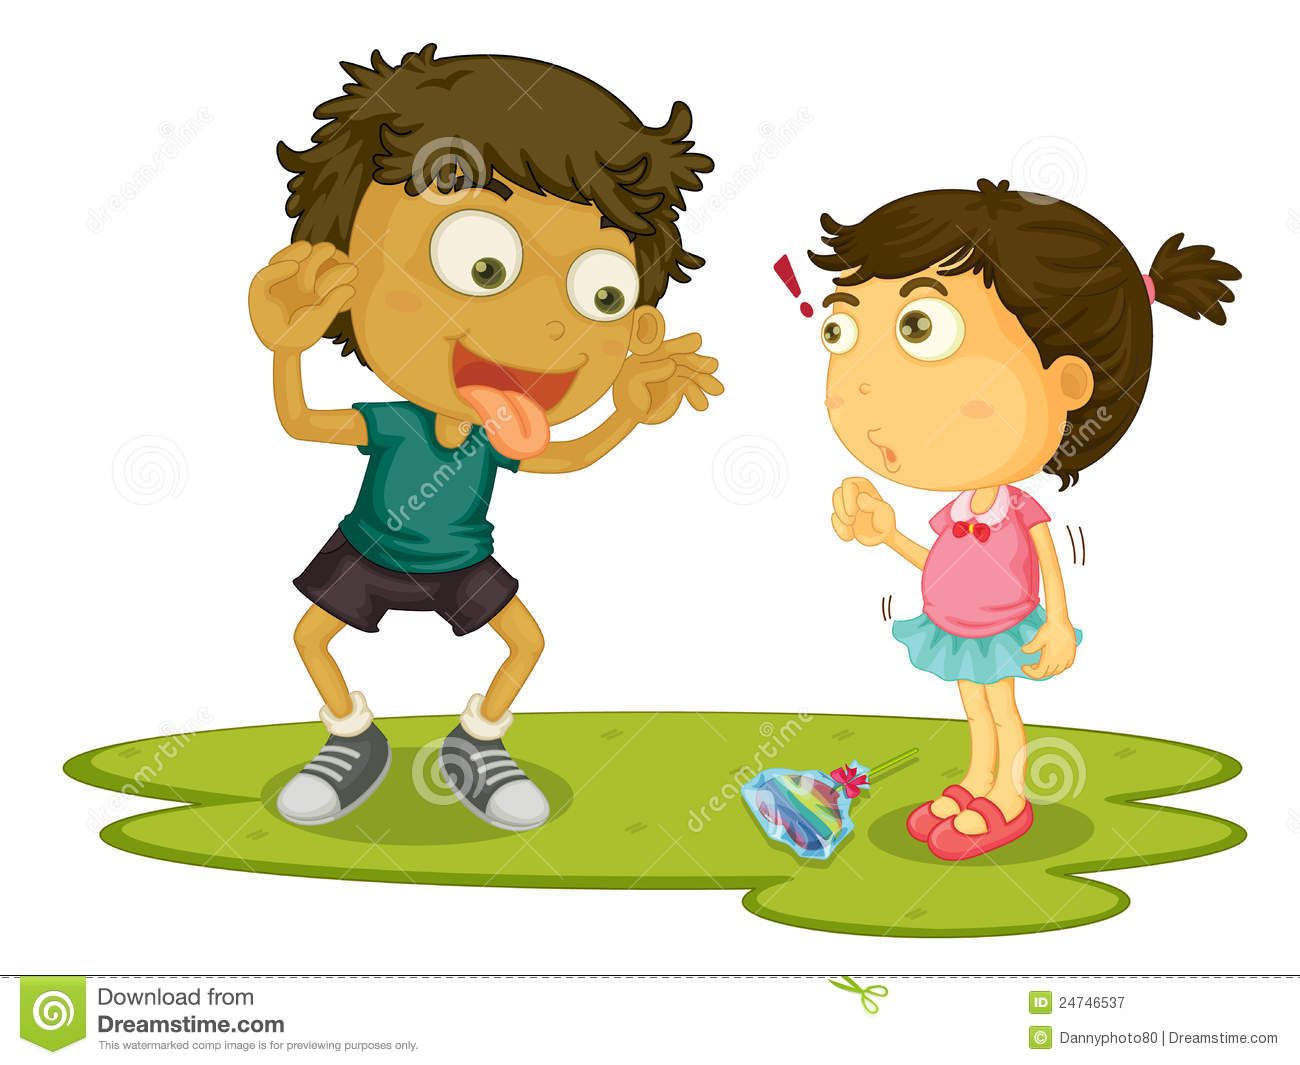 bullying at school clipart.